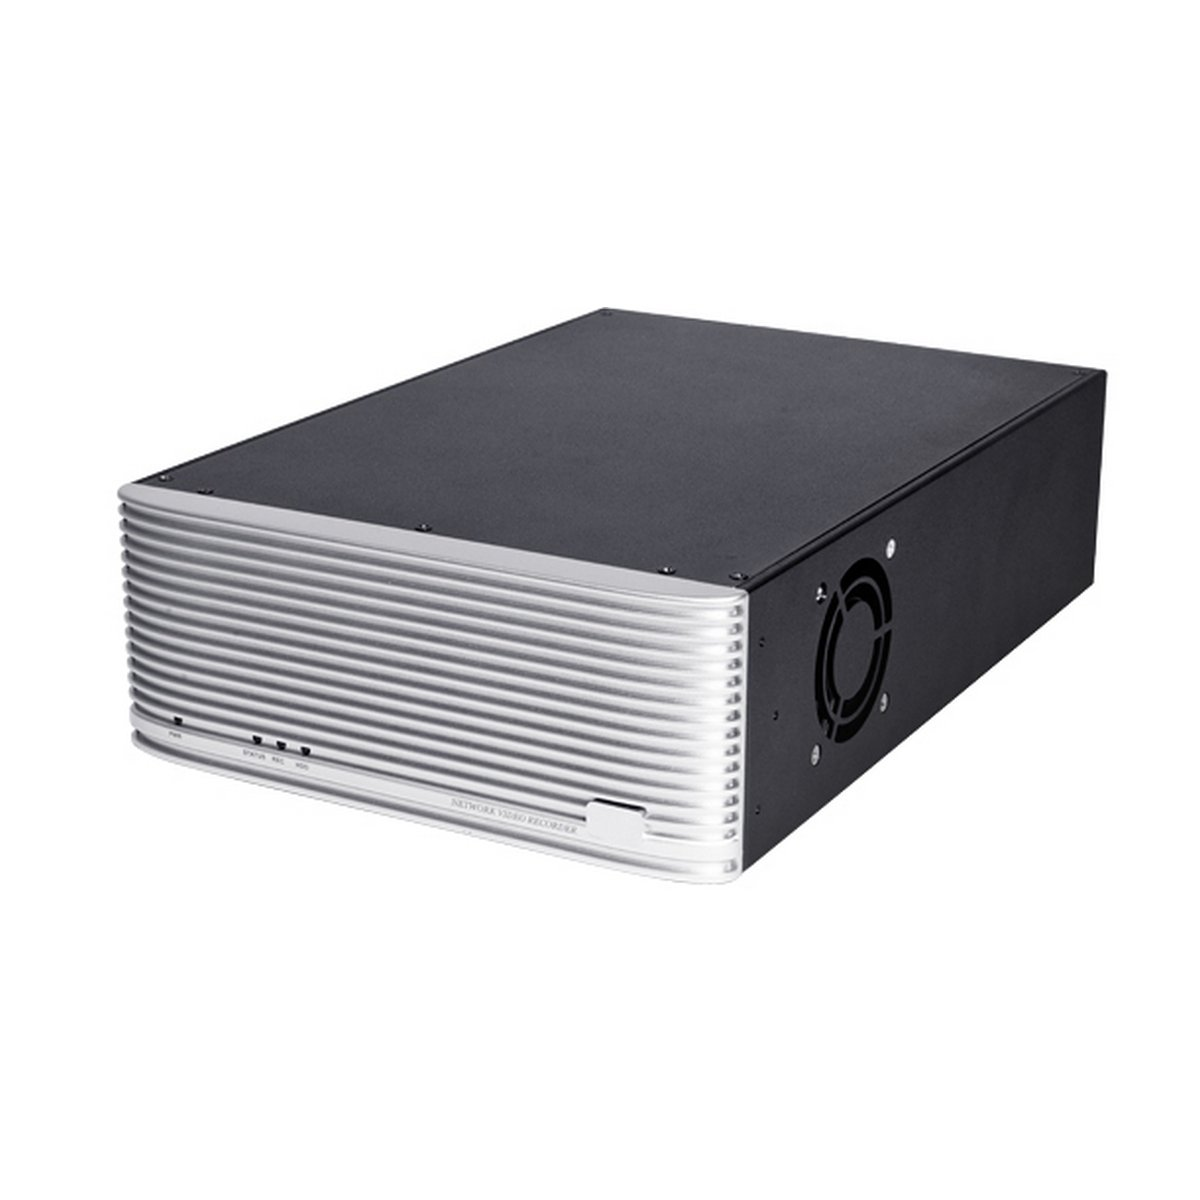 Marshall Electronics VS-NVR-1610-2TB | Stand Alone 16 Channel Network Video Recorder 2TB Storage